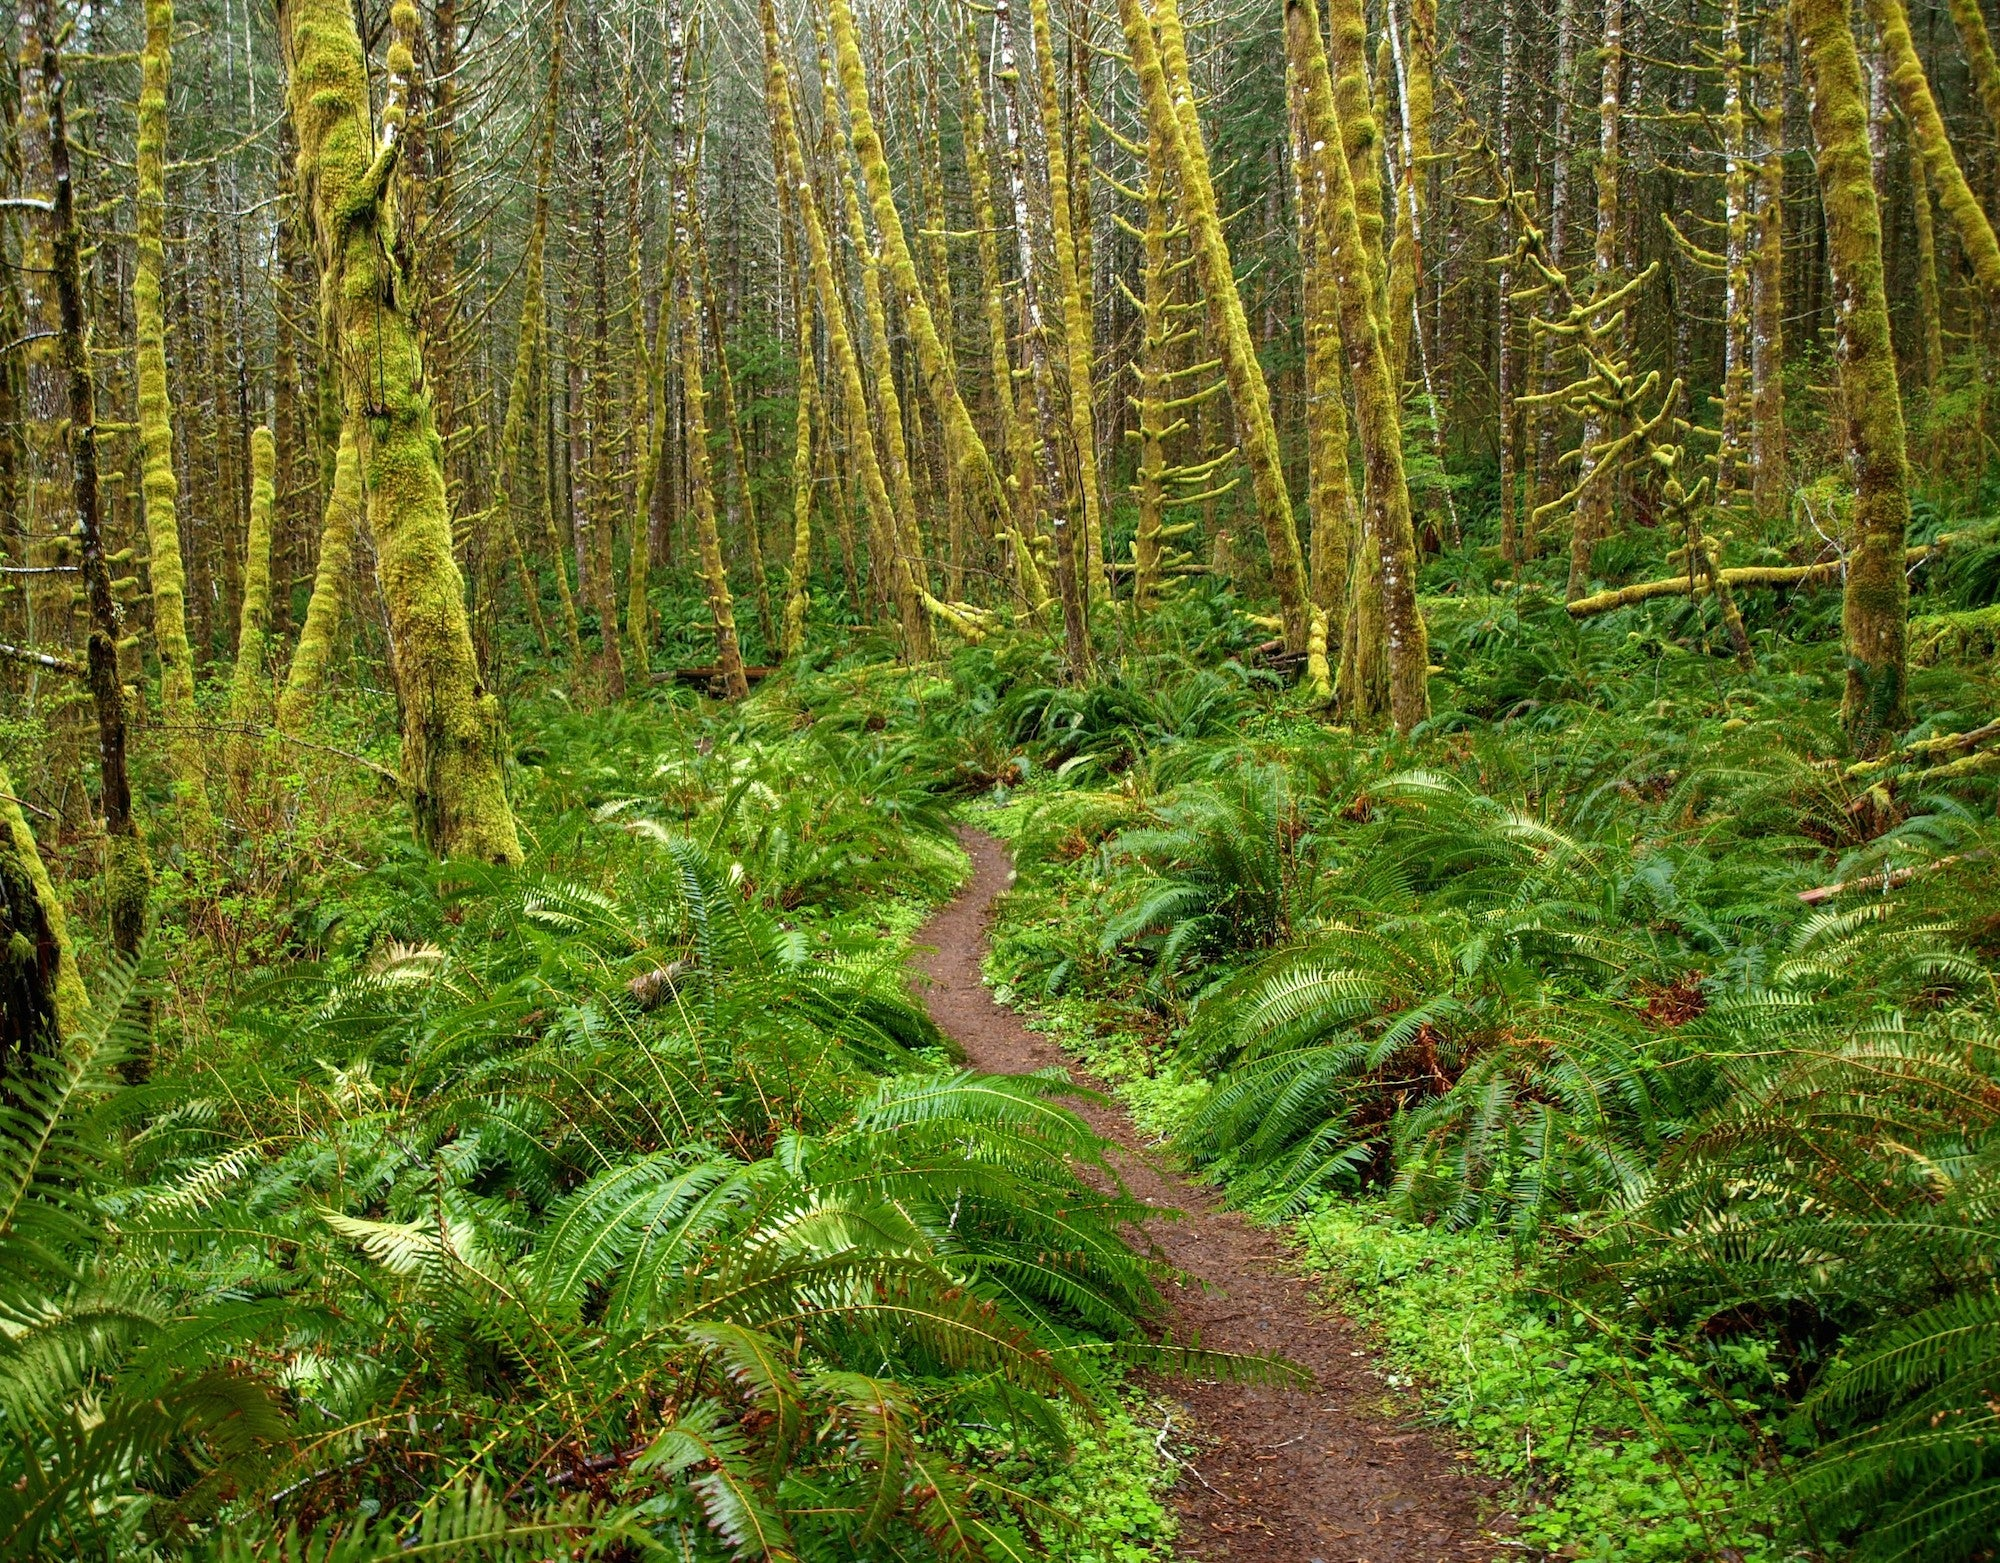 image of oak trees covered in moss with a dirt trail running through a fern covered ground and trees after rainfall